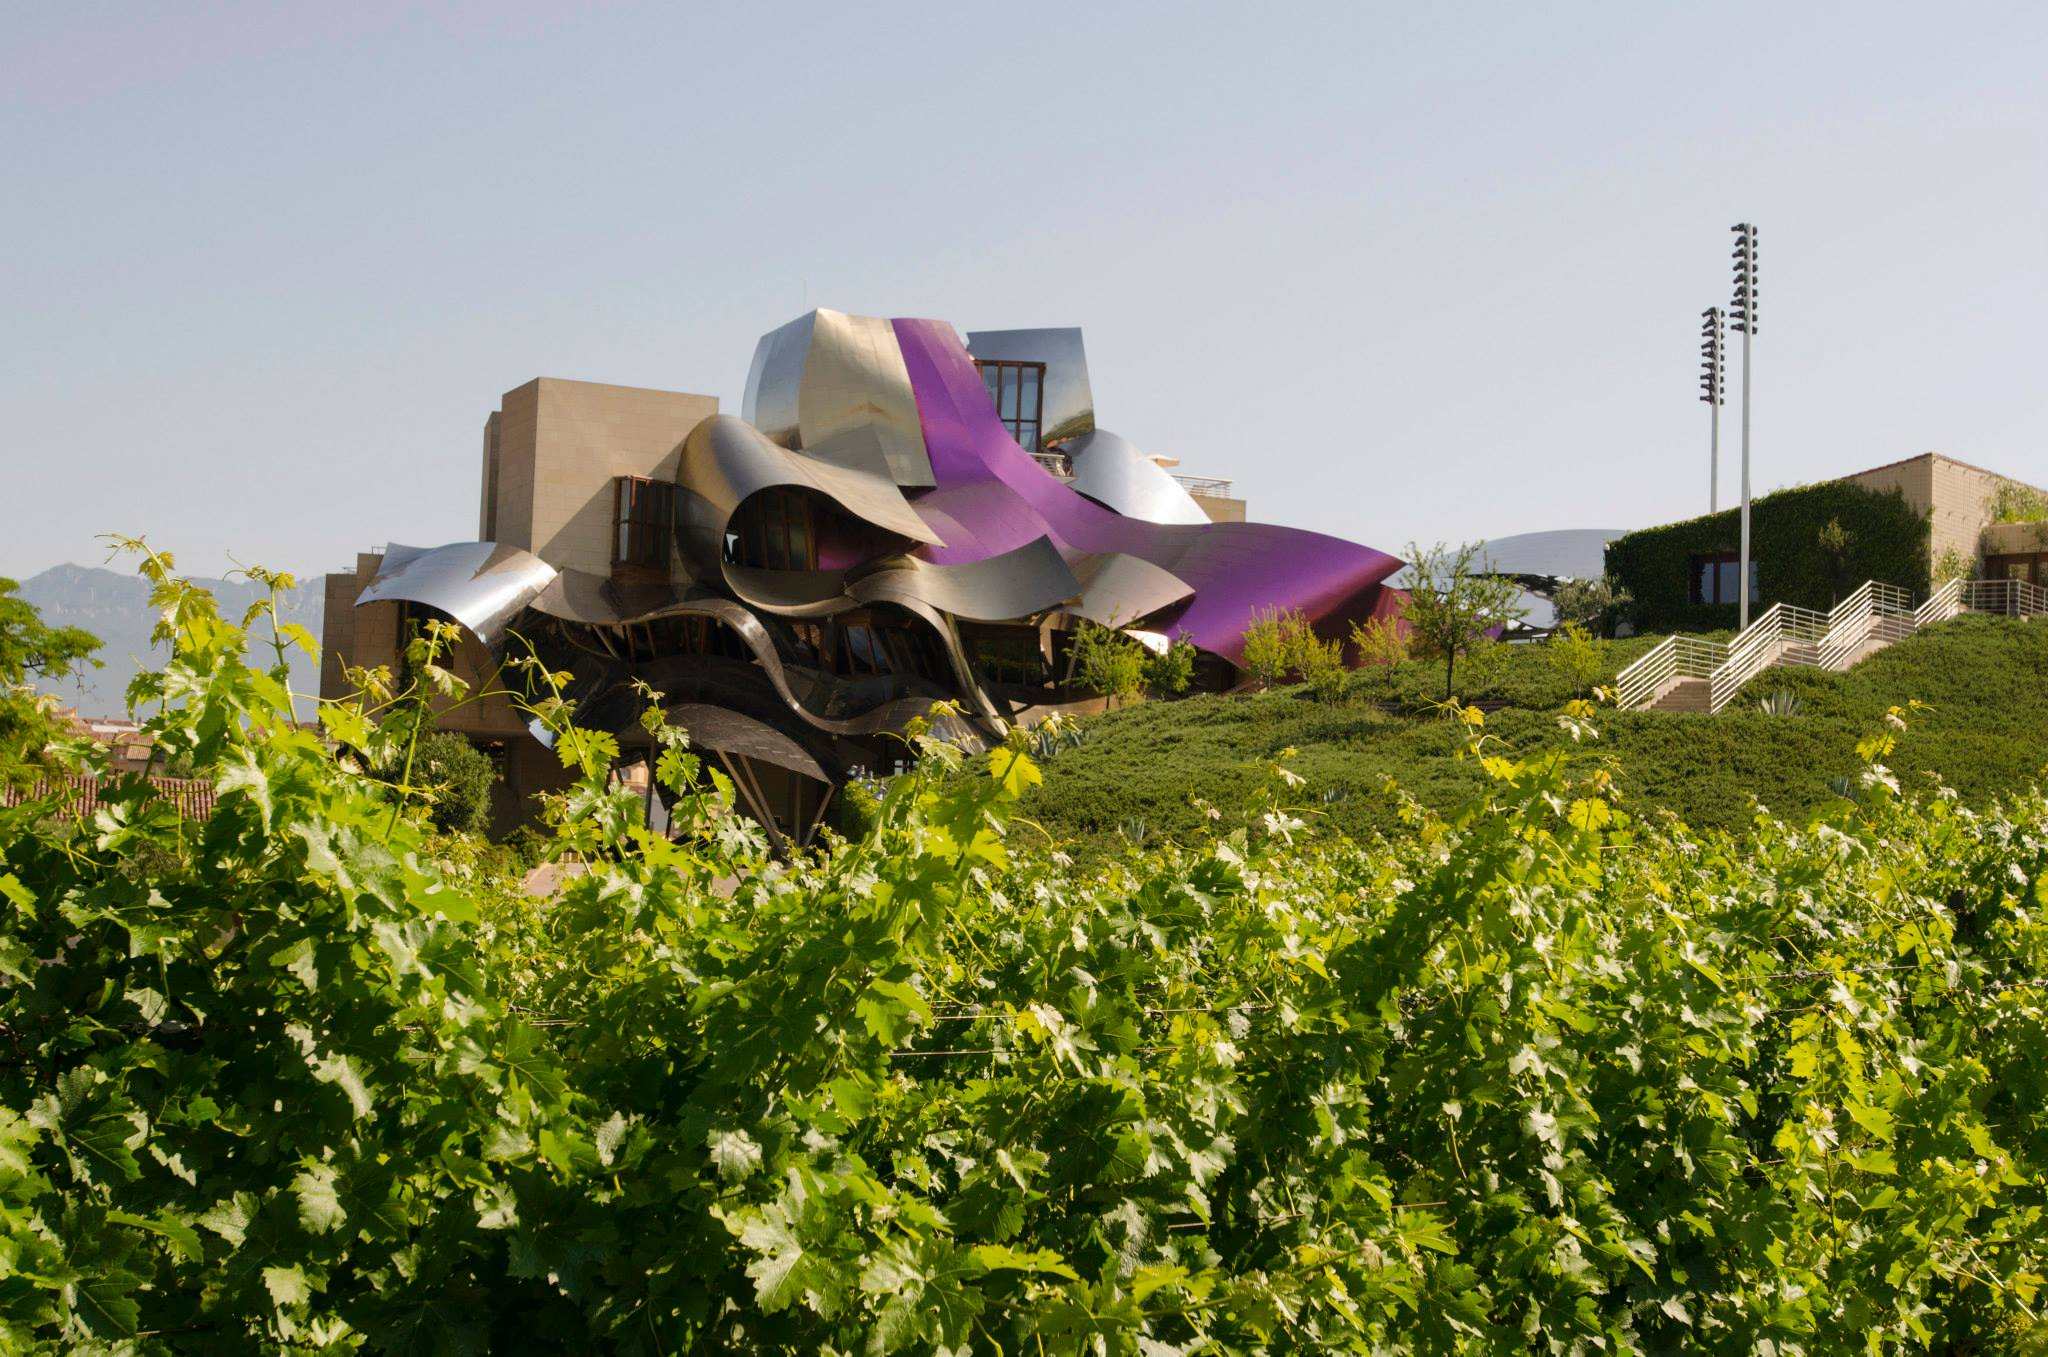 Marquis de Riscal winery, designed by Frank Gehry